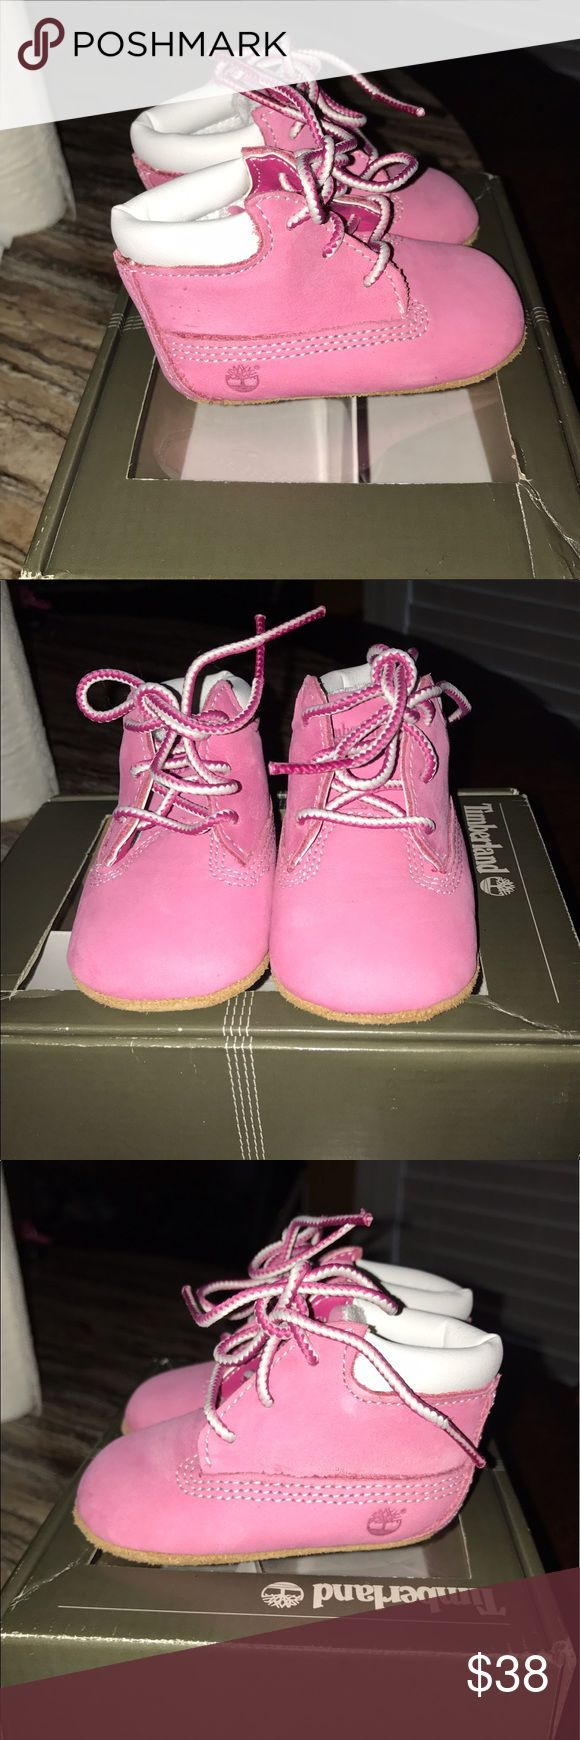 Timberland Baby Boots Timberland pink and white baby boots. Size 1 brand new never worn. Timberland Shoes Boots